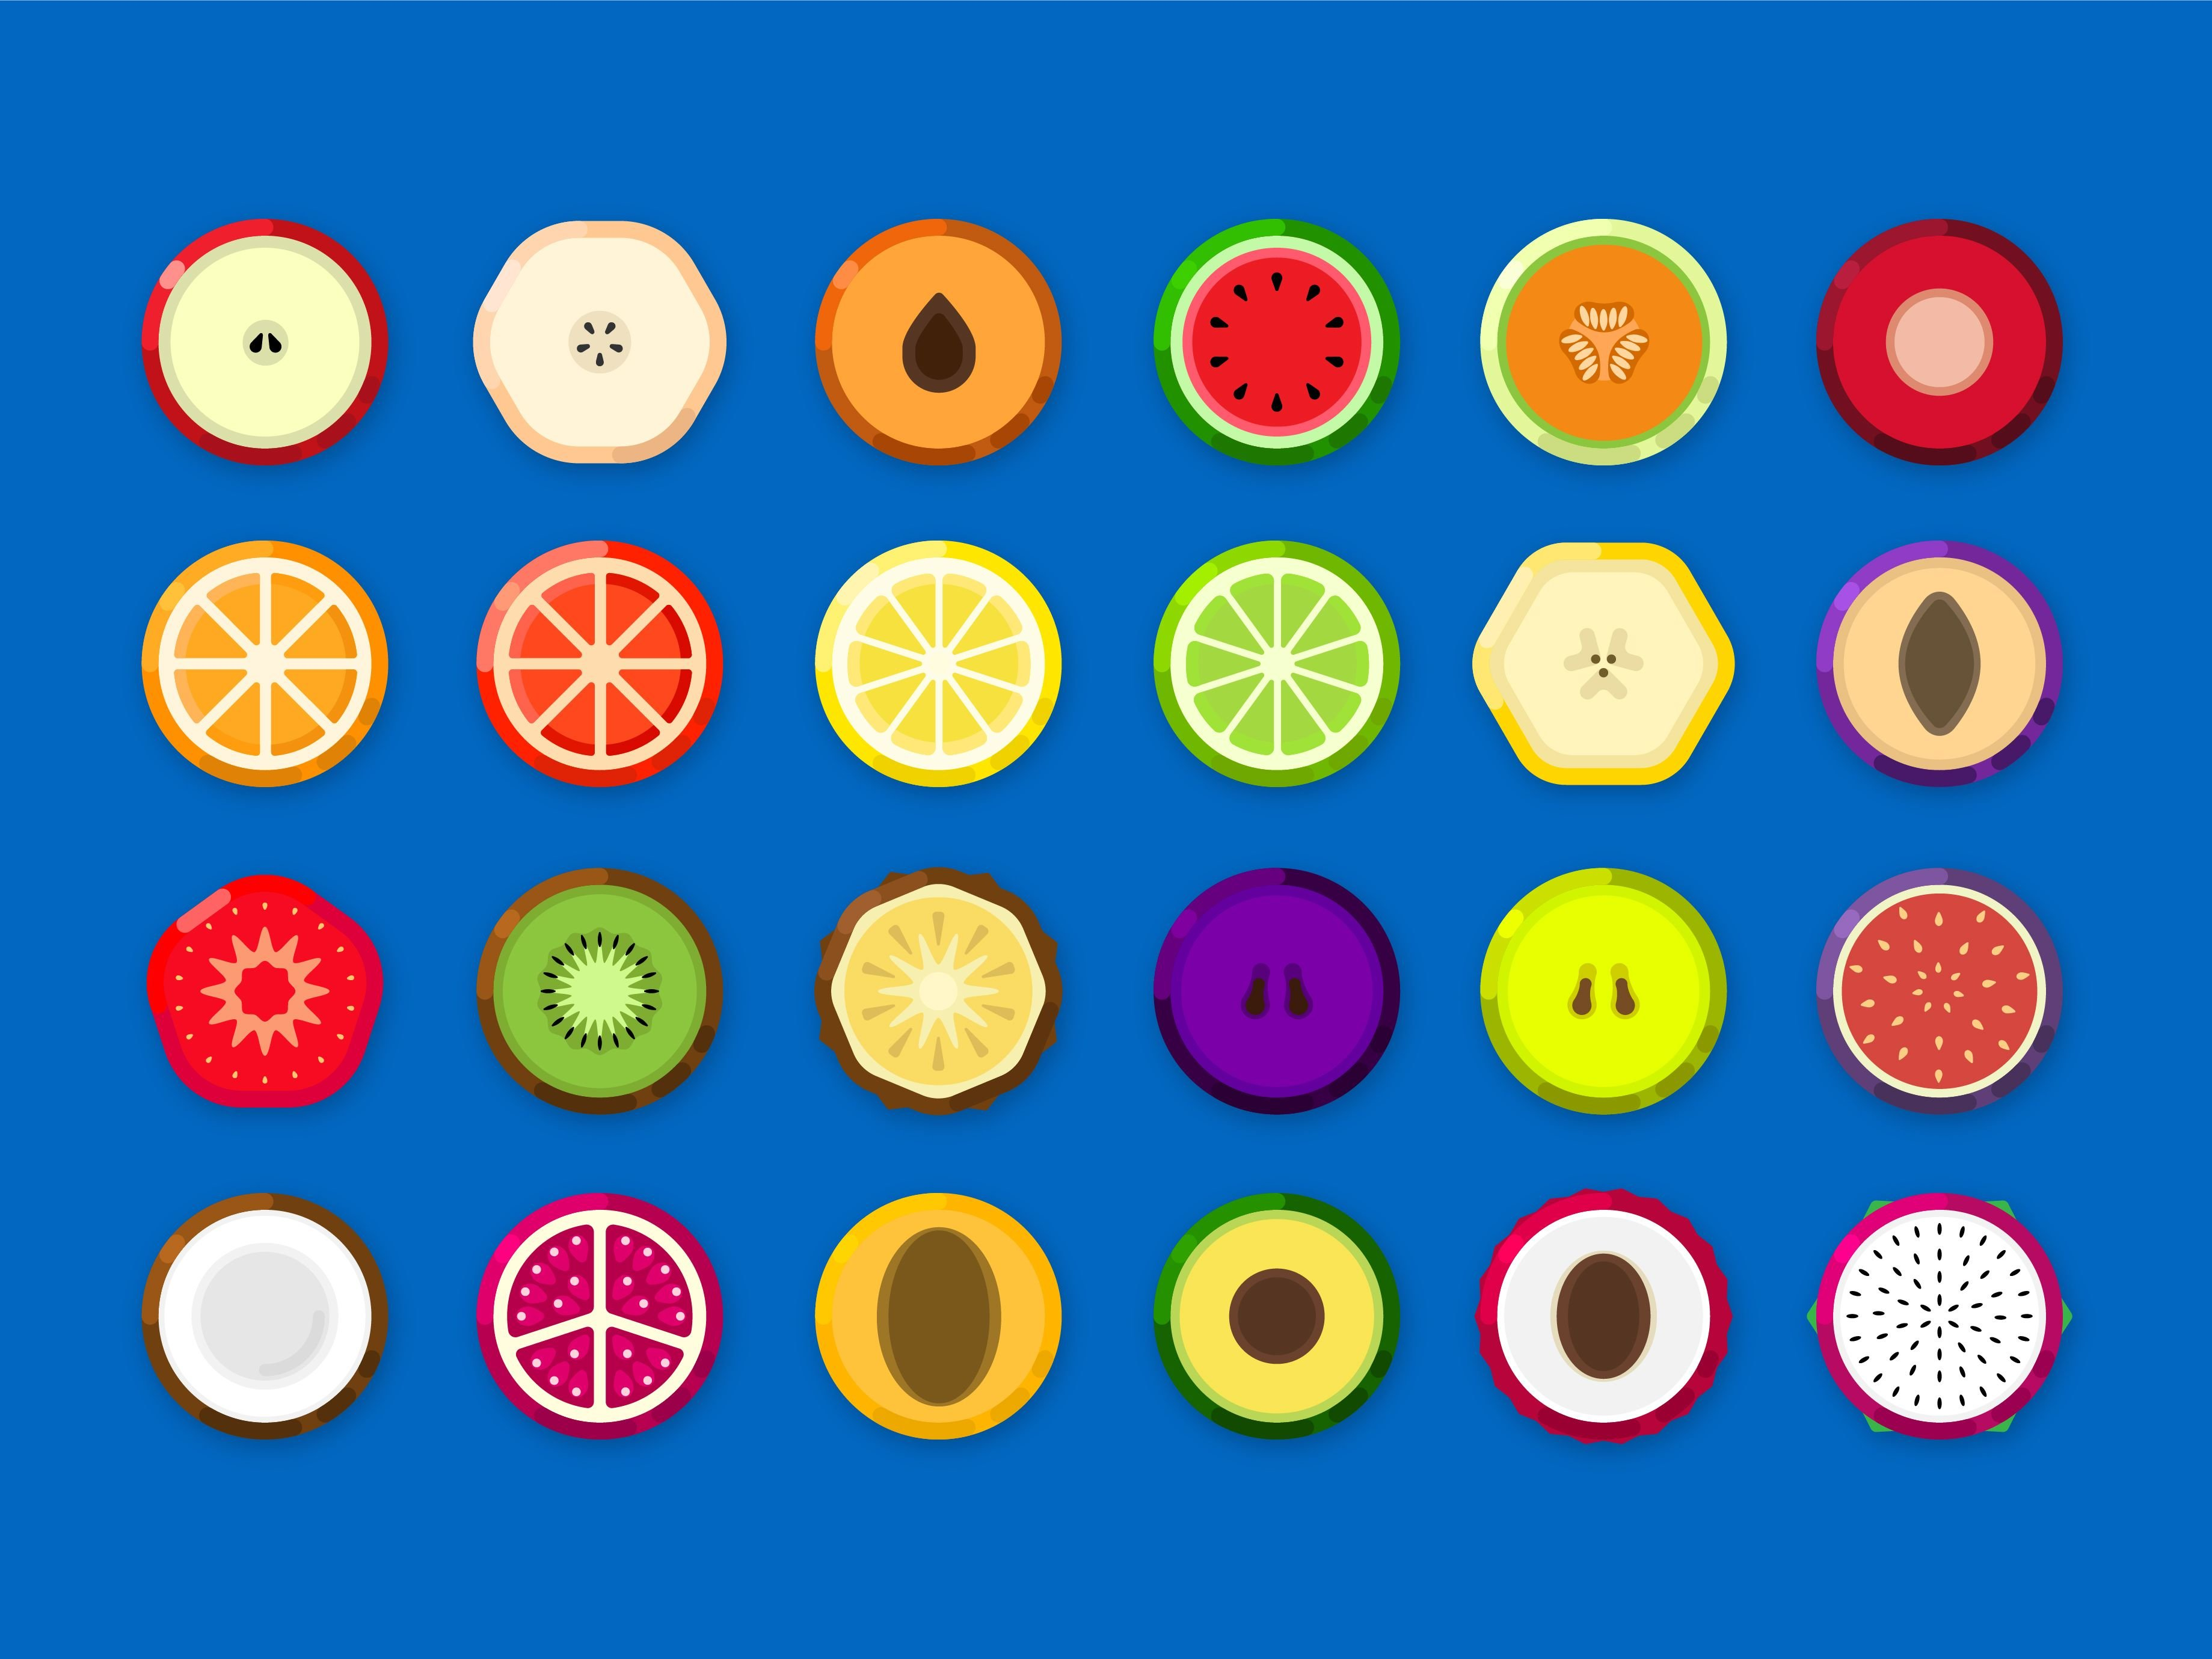 Fruicon - Flat Design Fruit Icons Screenshot 1